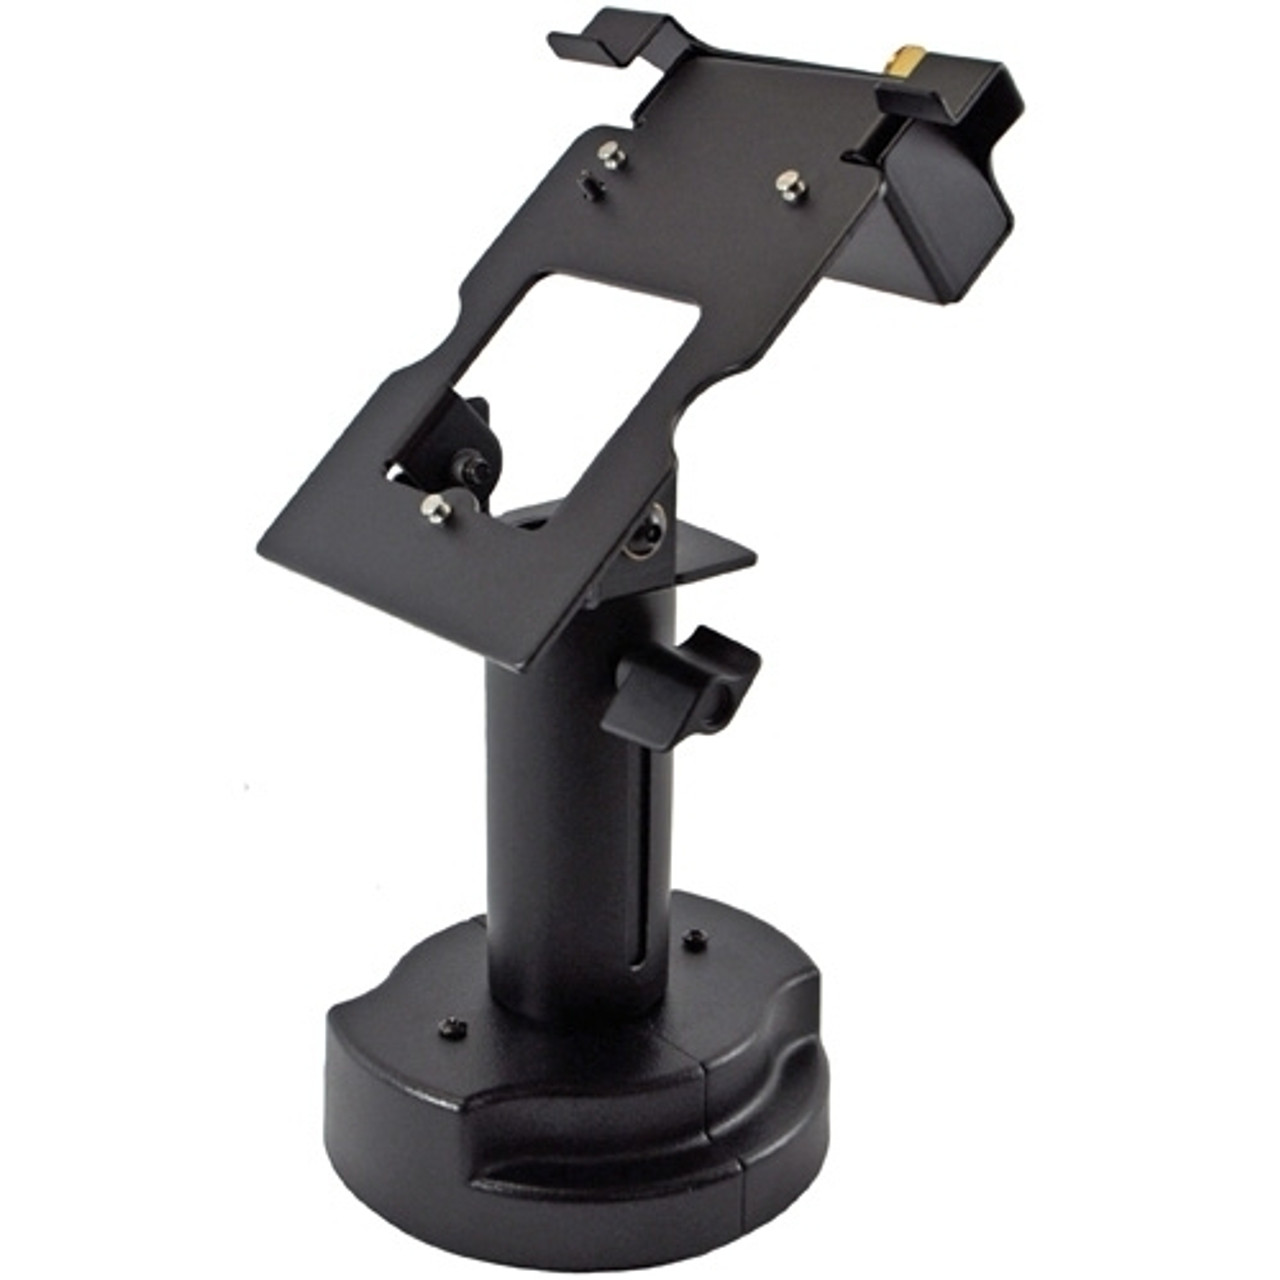 Verifone MX860 Credit Card Stand Locking Telescoping Pedestal by Swivel Stands